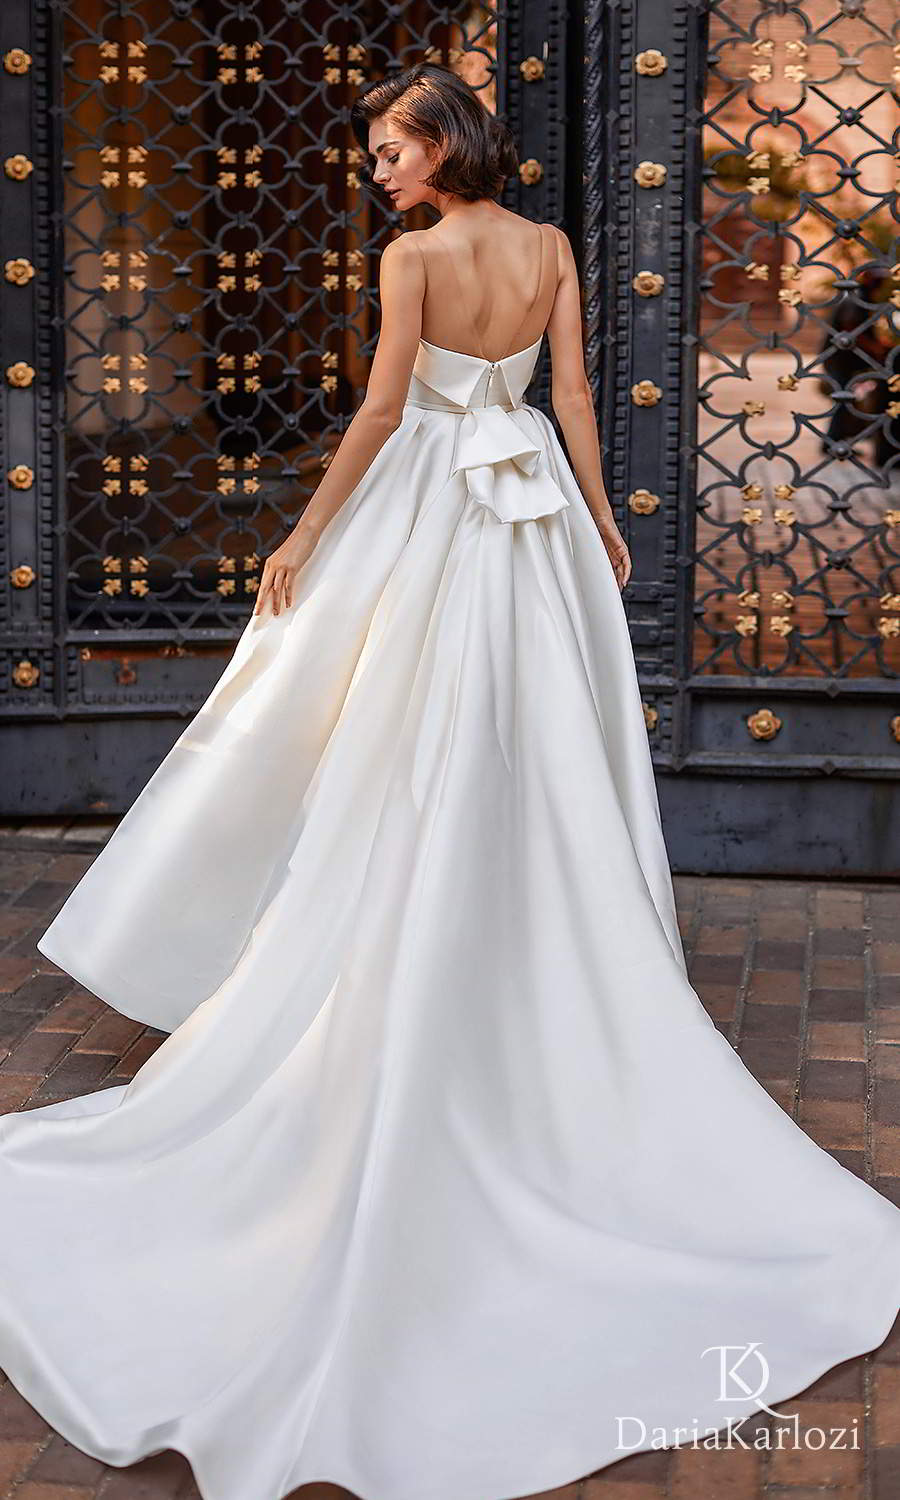 daria karlozi 2021 graceful dream bridal sleeveless illusion straight across neckline clean minimalist a line ball gown wedding dress cathedral train (light breeze) bv